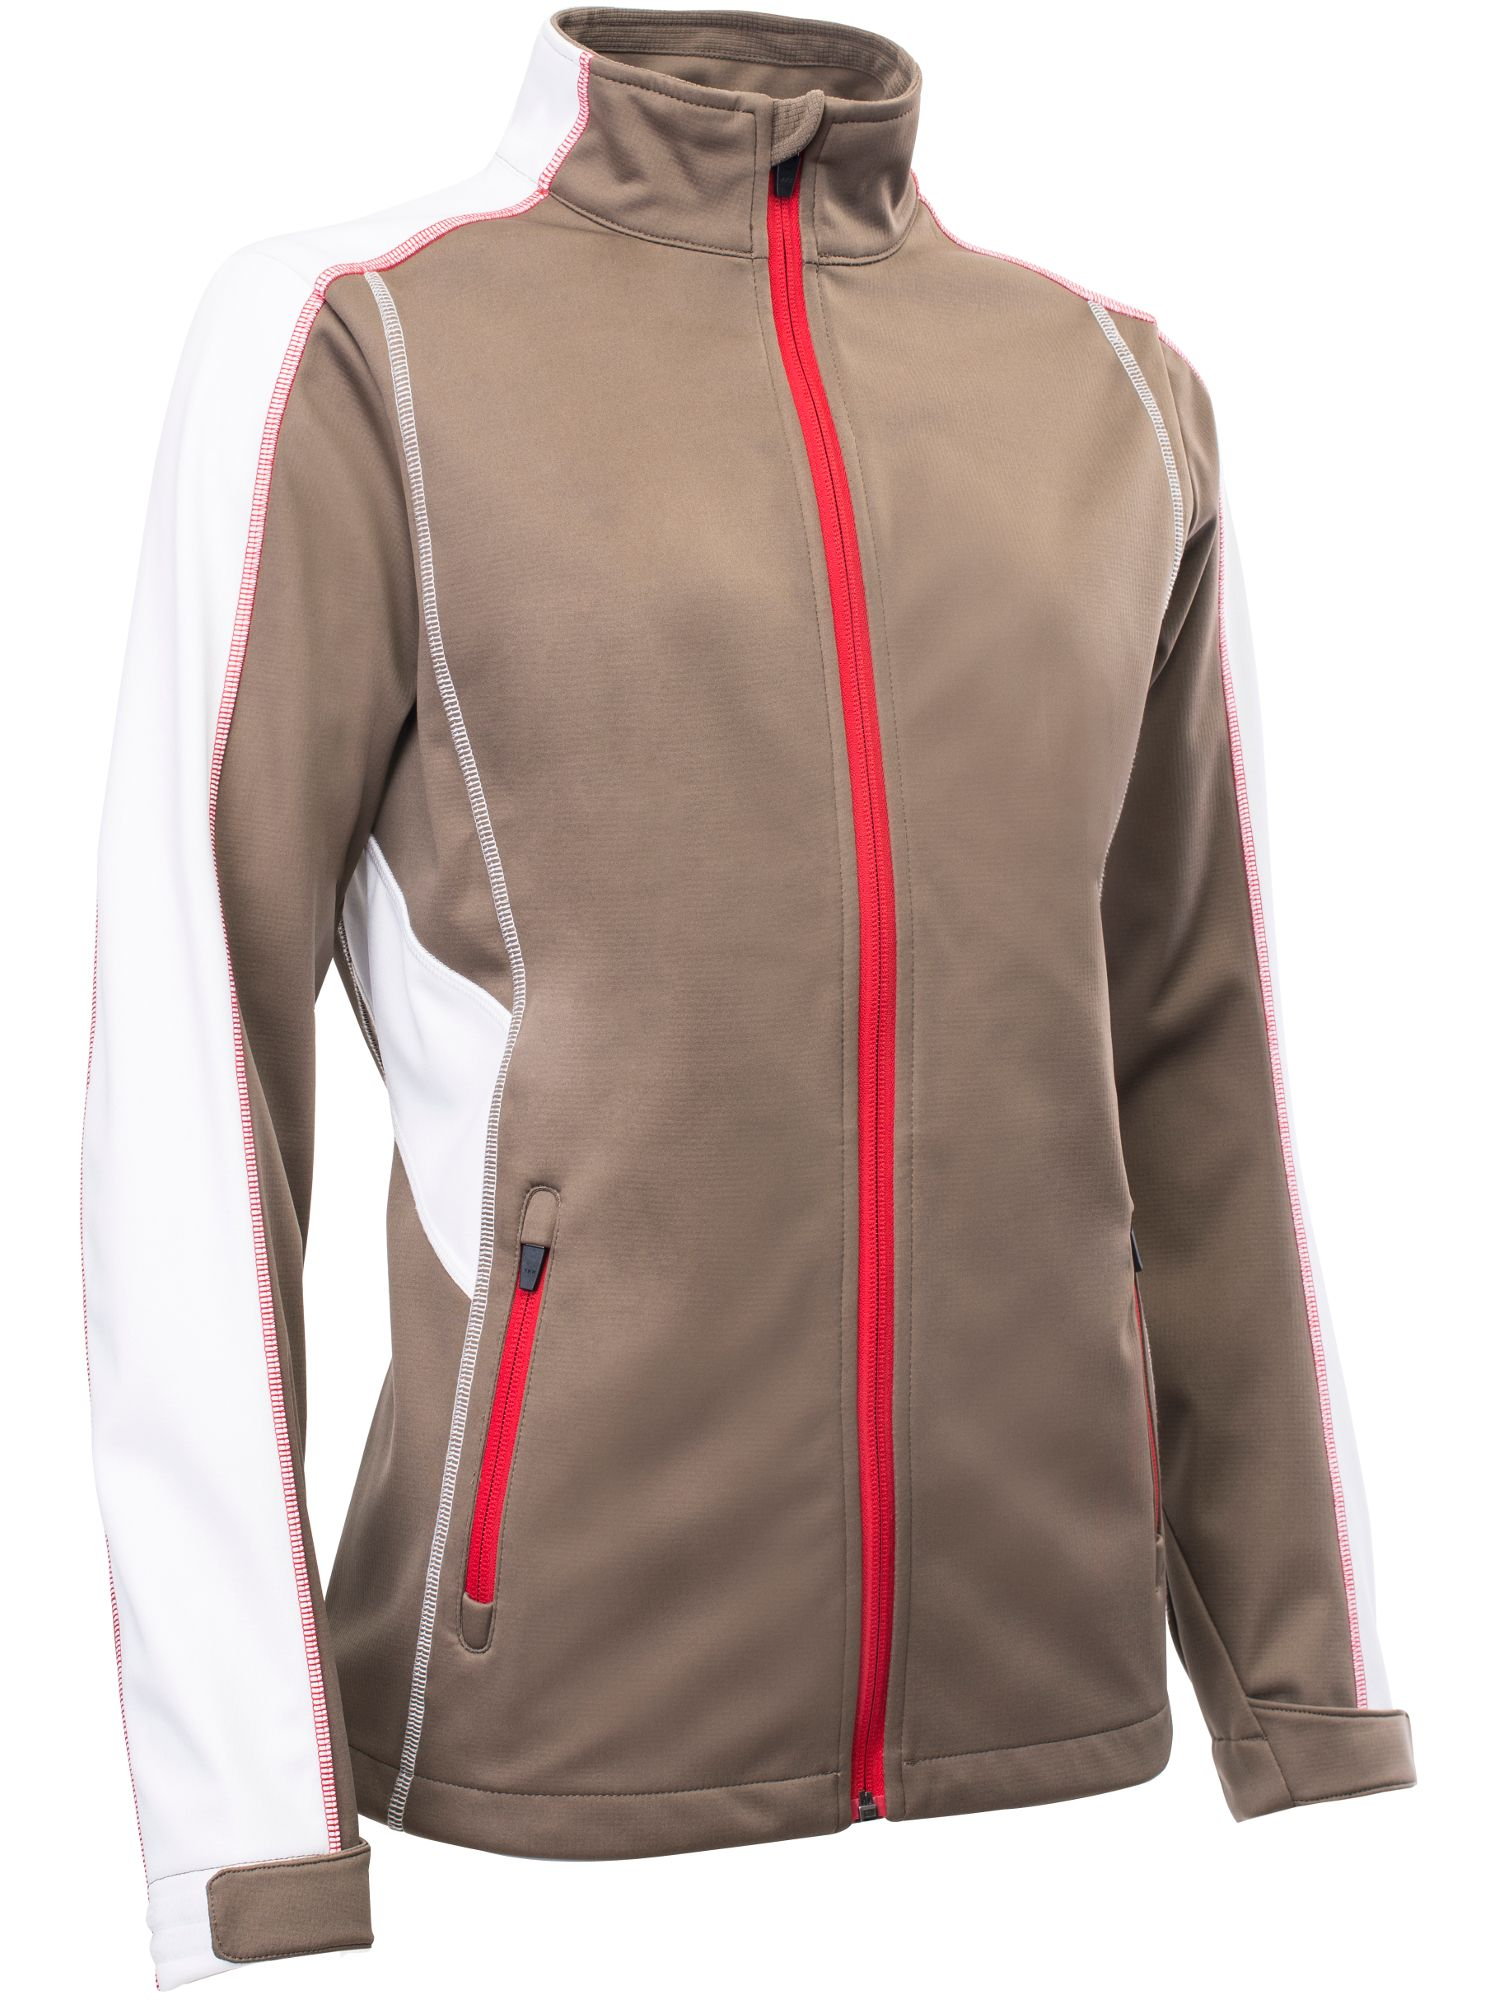 Abacus Aberdeen Softshell Jacket, White